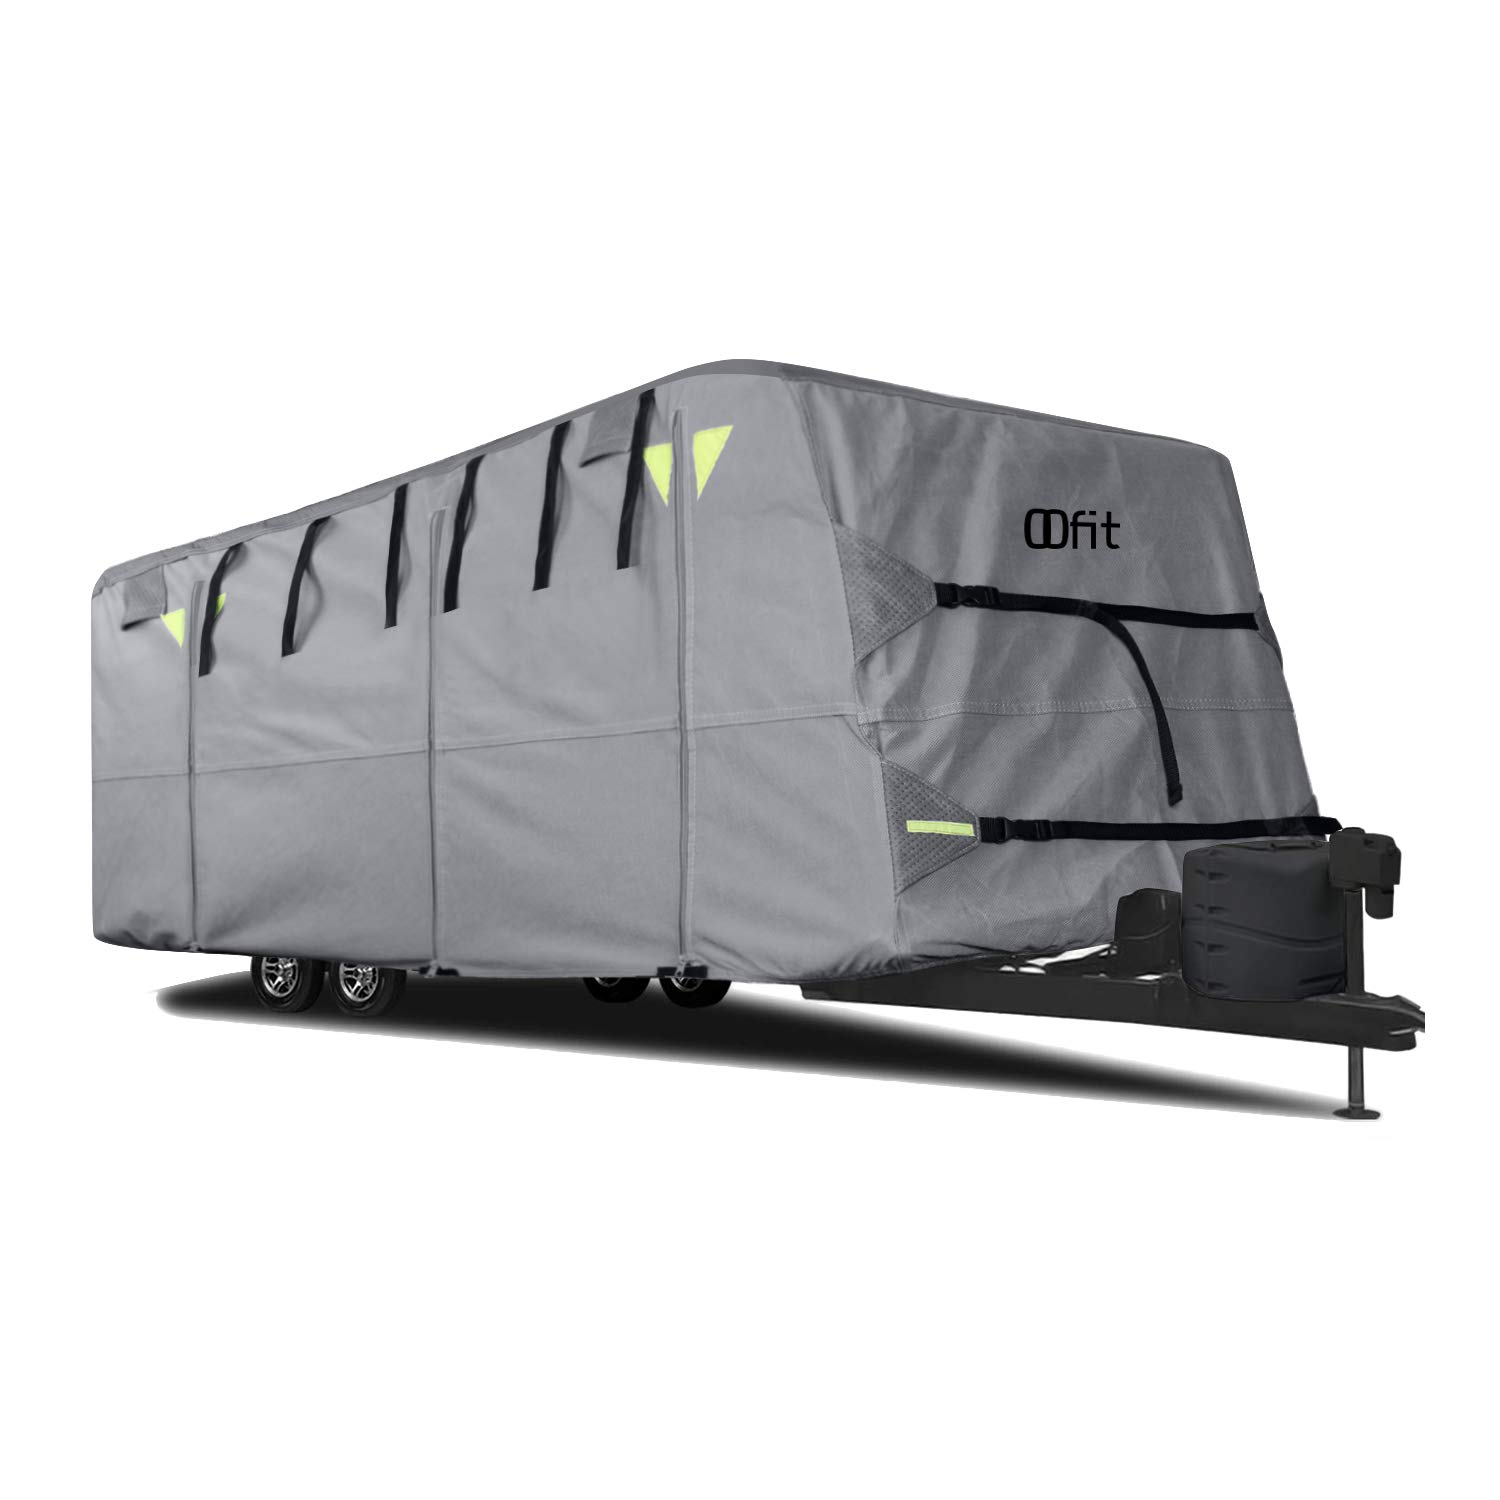 OOFIT Travel Trailer RV Cover Fits for 27' - 30'for RVs, Breathable Waterproof Anti-UV Ripstop Weather Resistant 4 - Ply Non-Woven Fabric by OOFIT